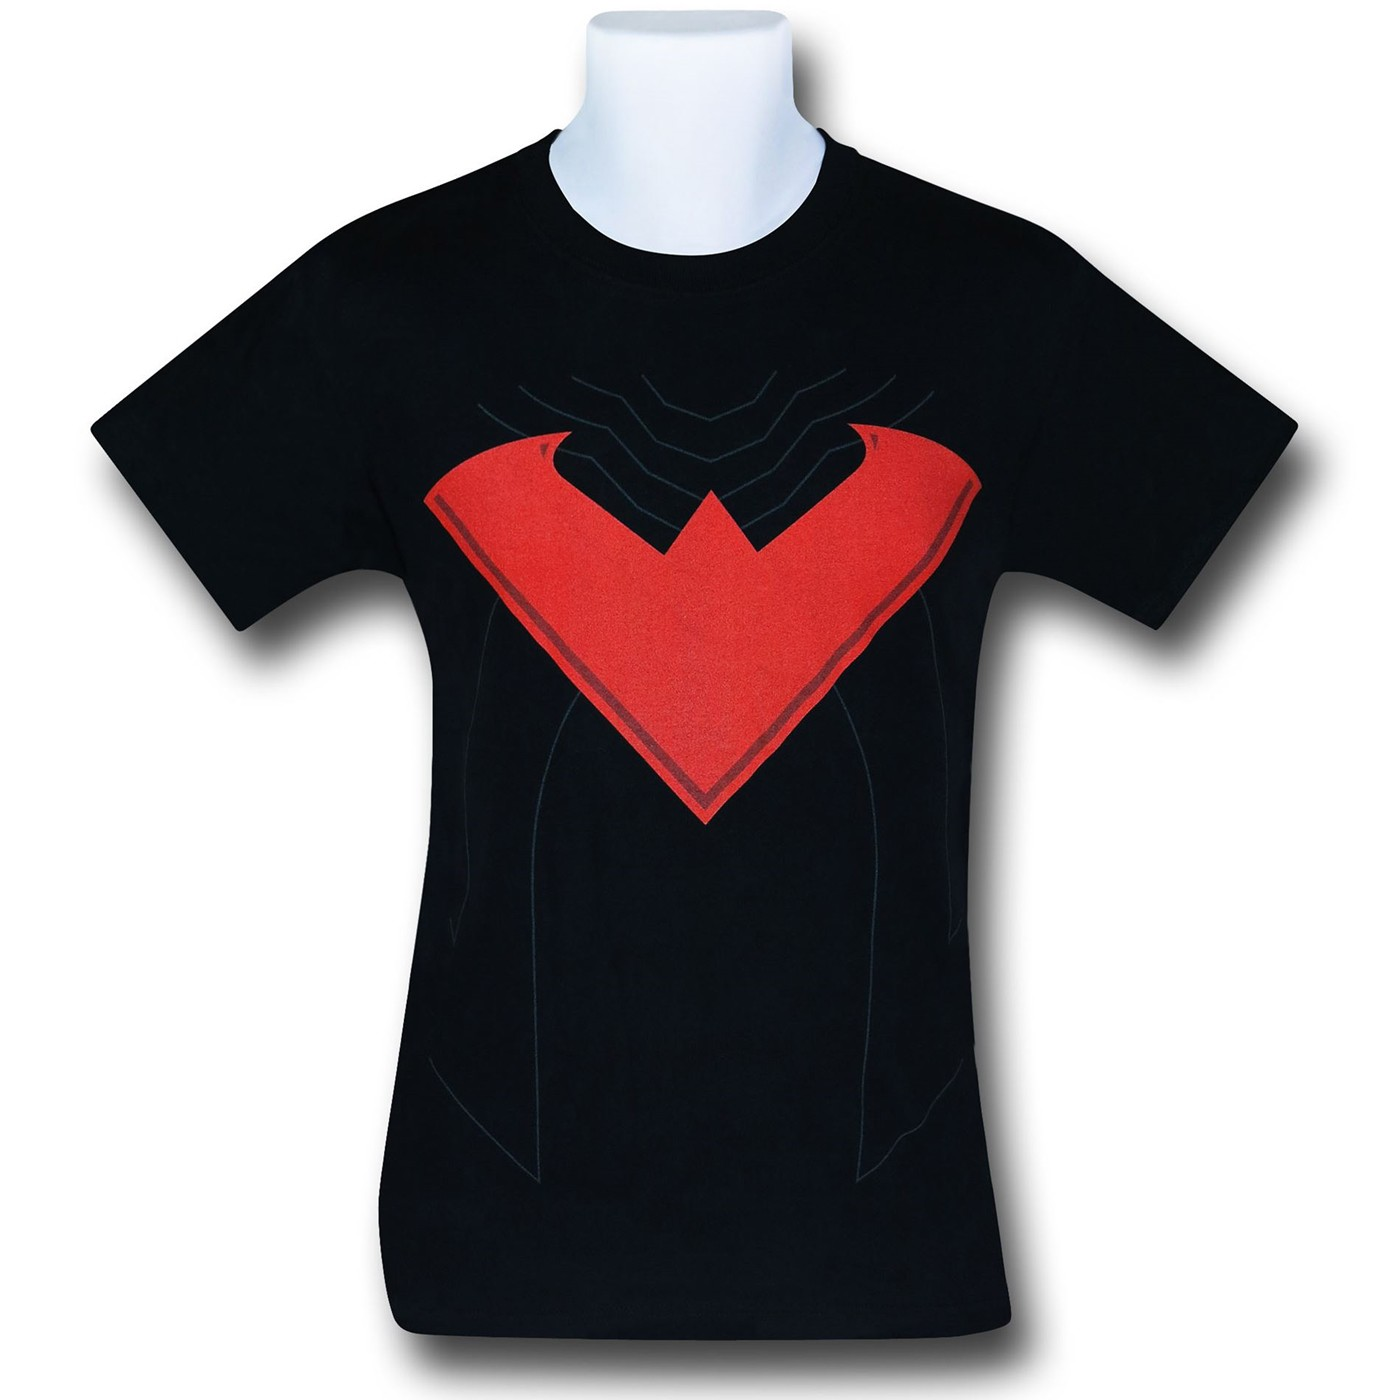 Nightwing Red Symbol Costume T-Shirt